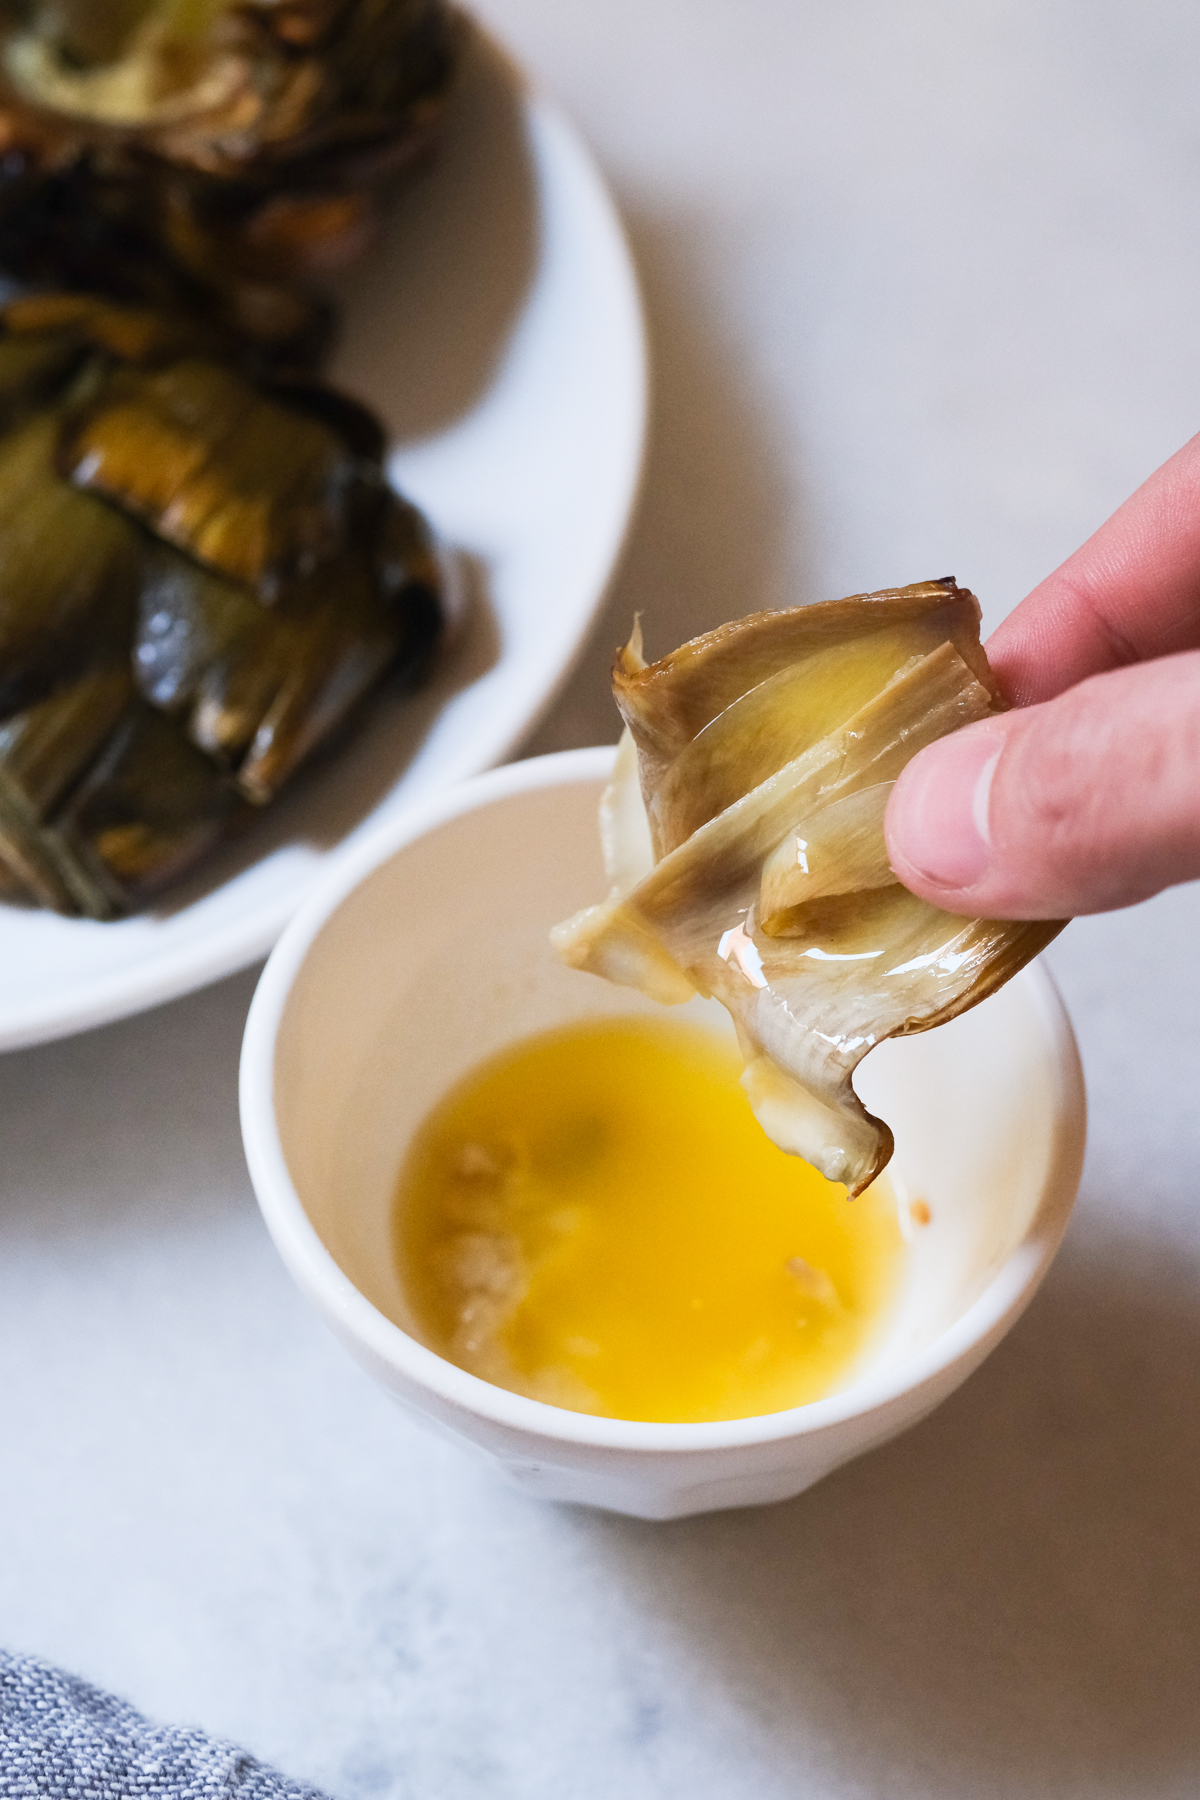 dipping artichoke leave in garlic butter